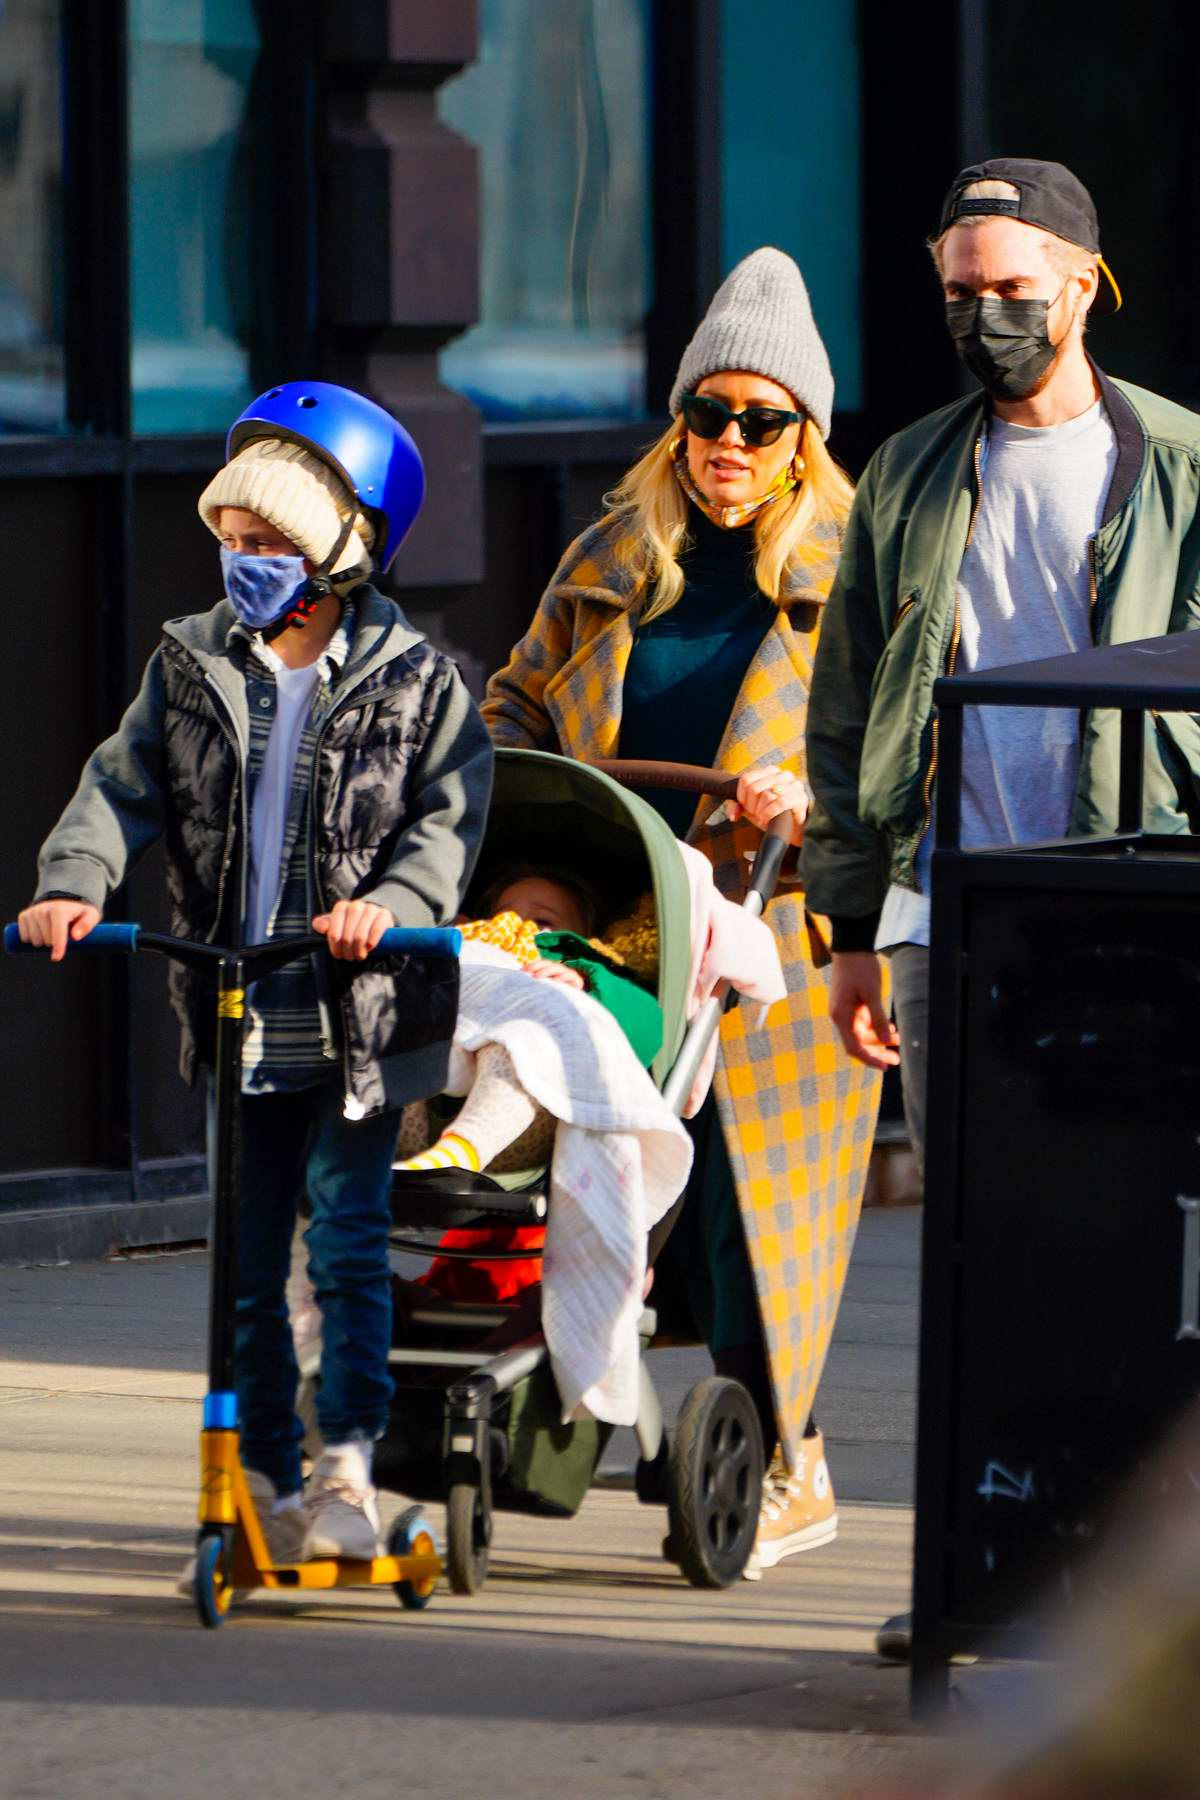 Hilary Duff bundles up in a warm checkered coat while out for a stroll with her family in New York City